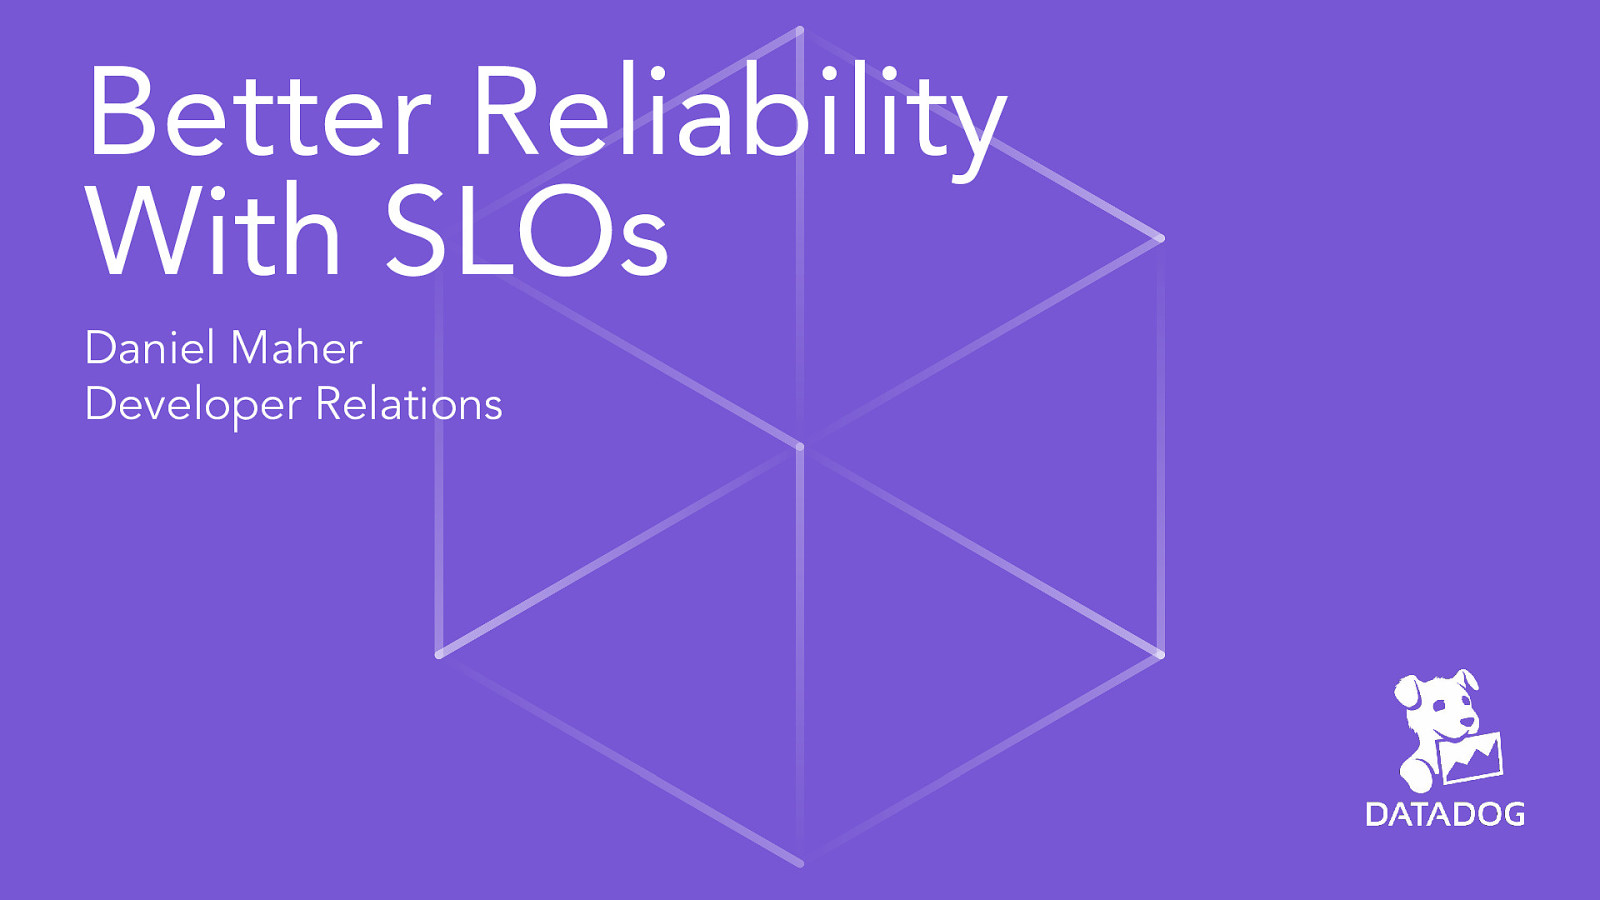 Better reliability through SLOs